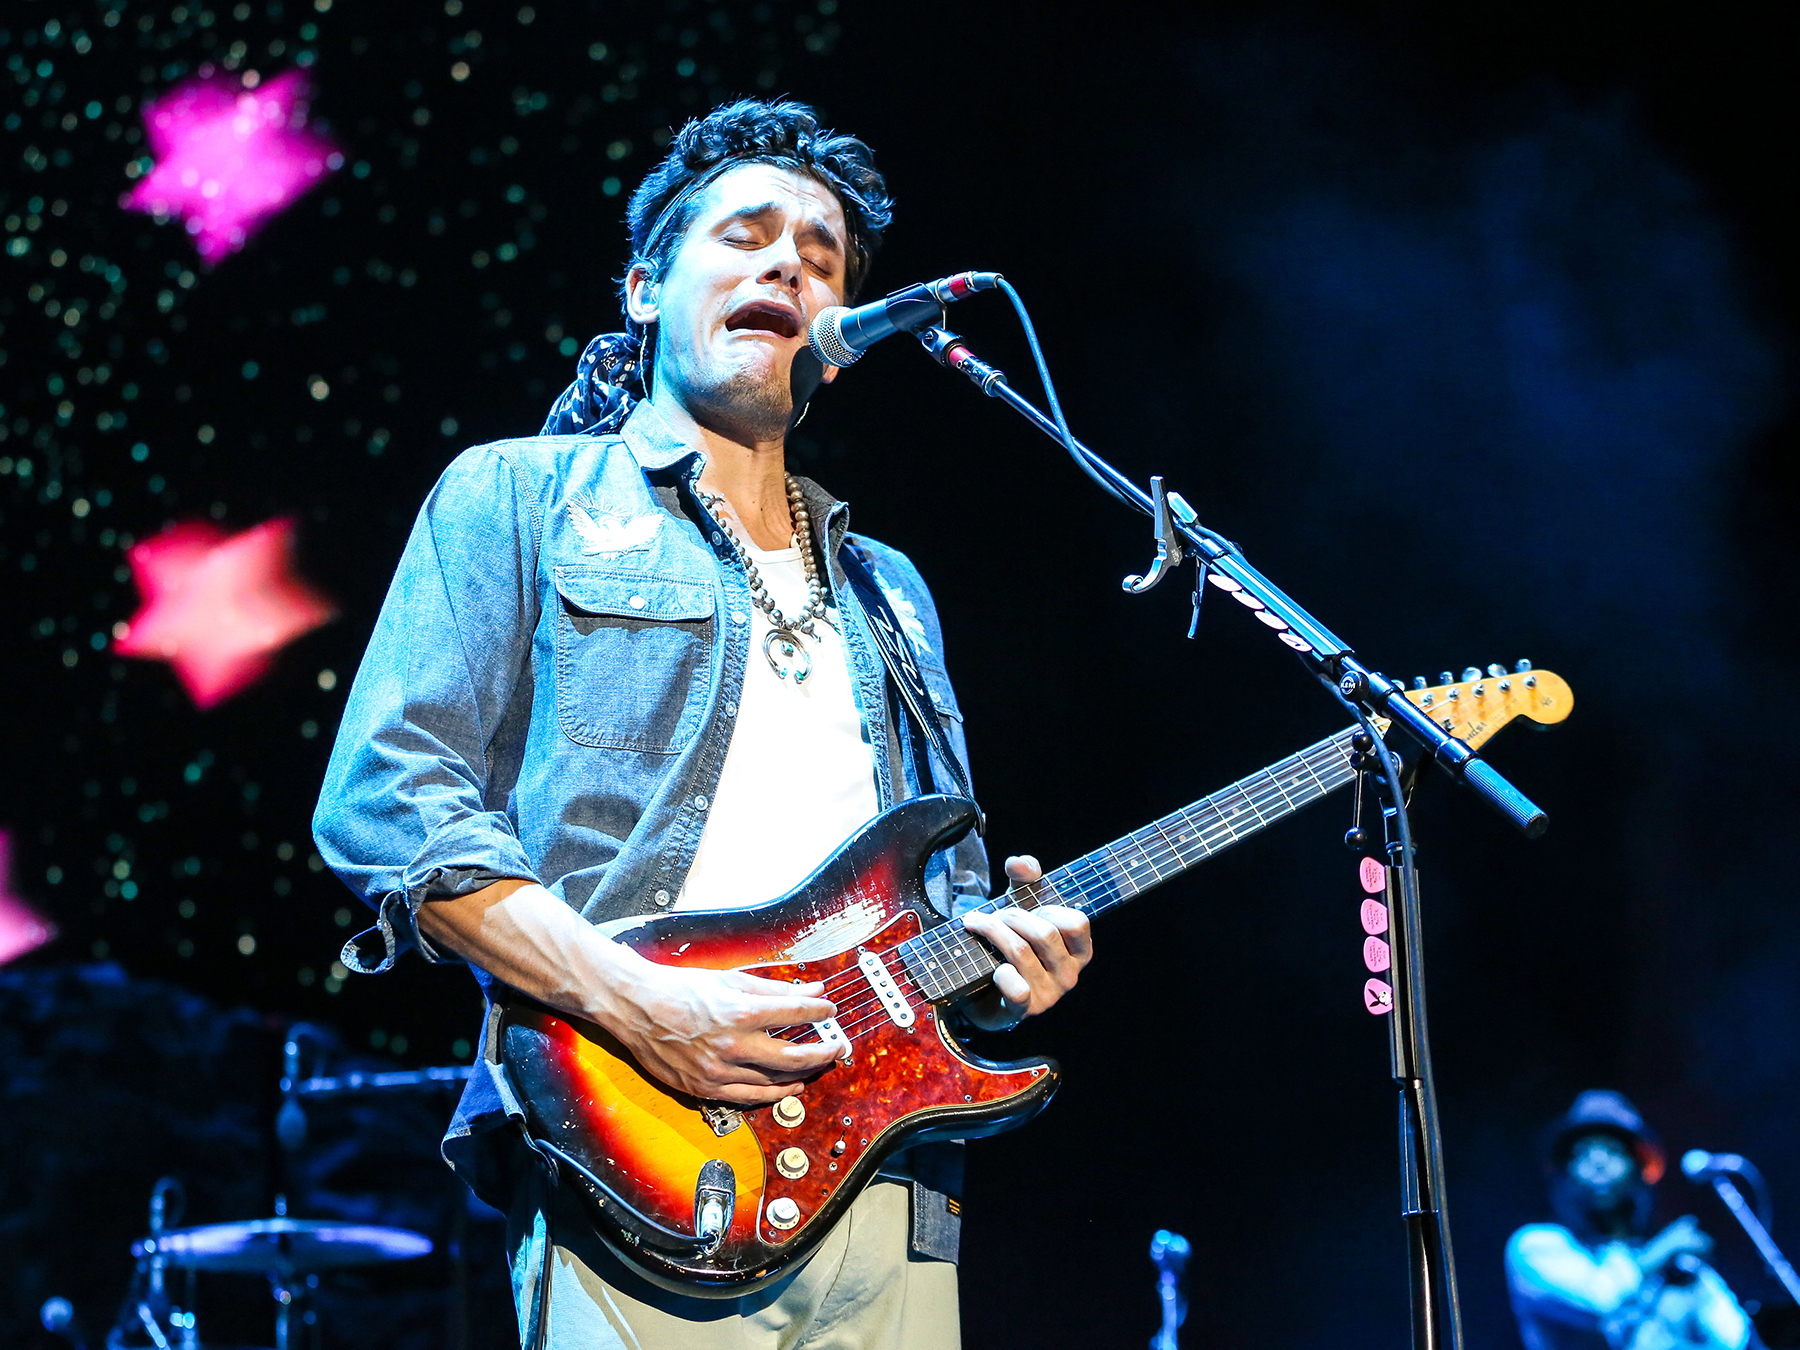 Watch John Mayer wax lyrical about his PRS Silver Sky